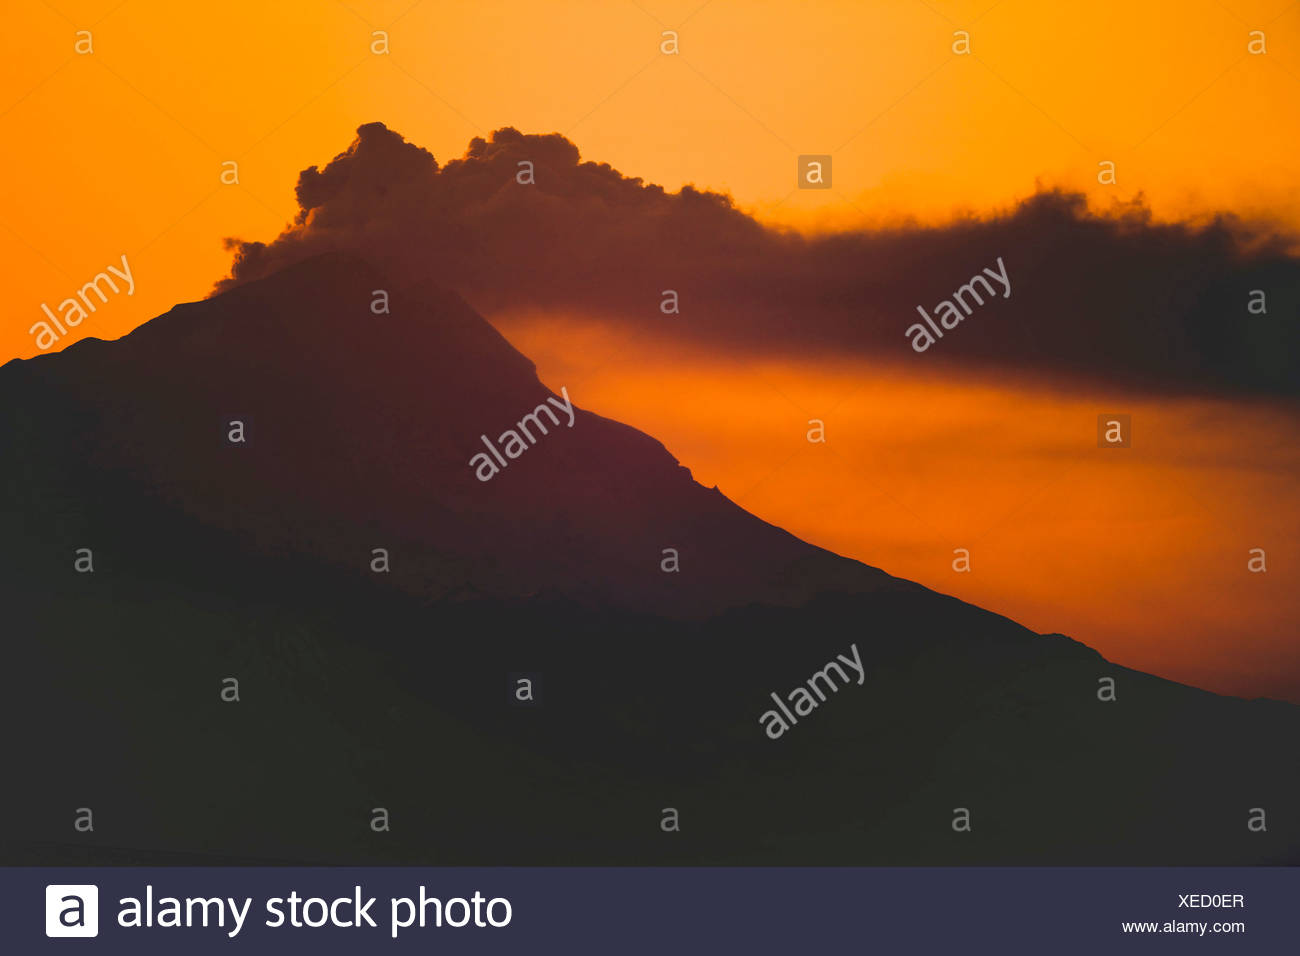 Alaska. Mt. Redoubt emitting steam and ash at sunset, as viewed from Kenai. Stock Photo